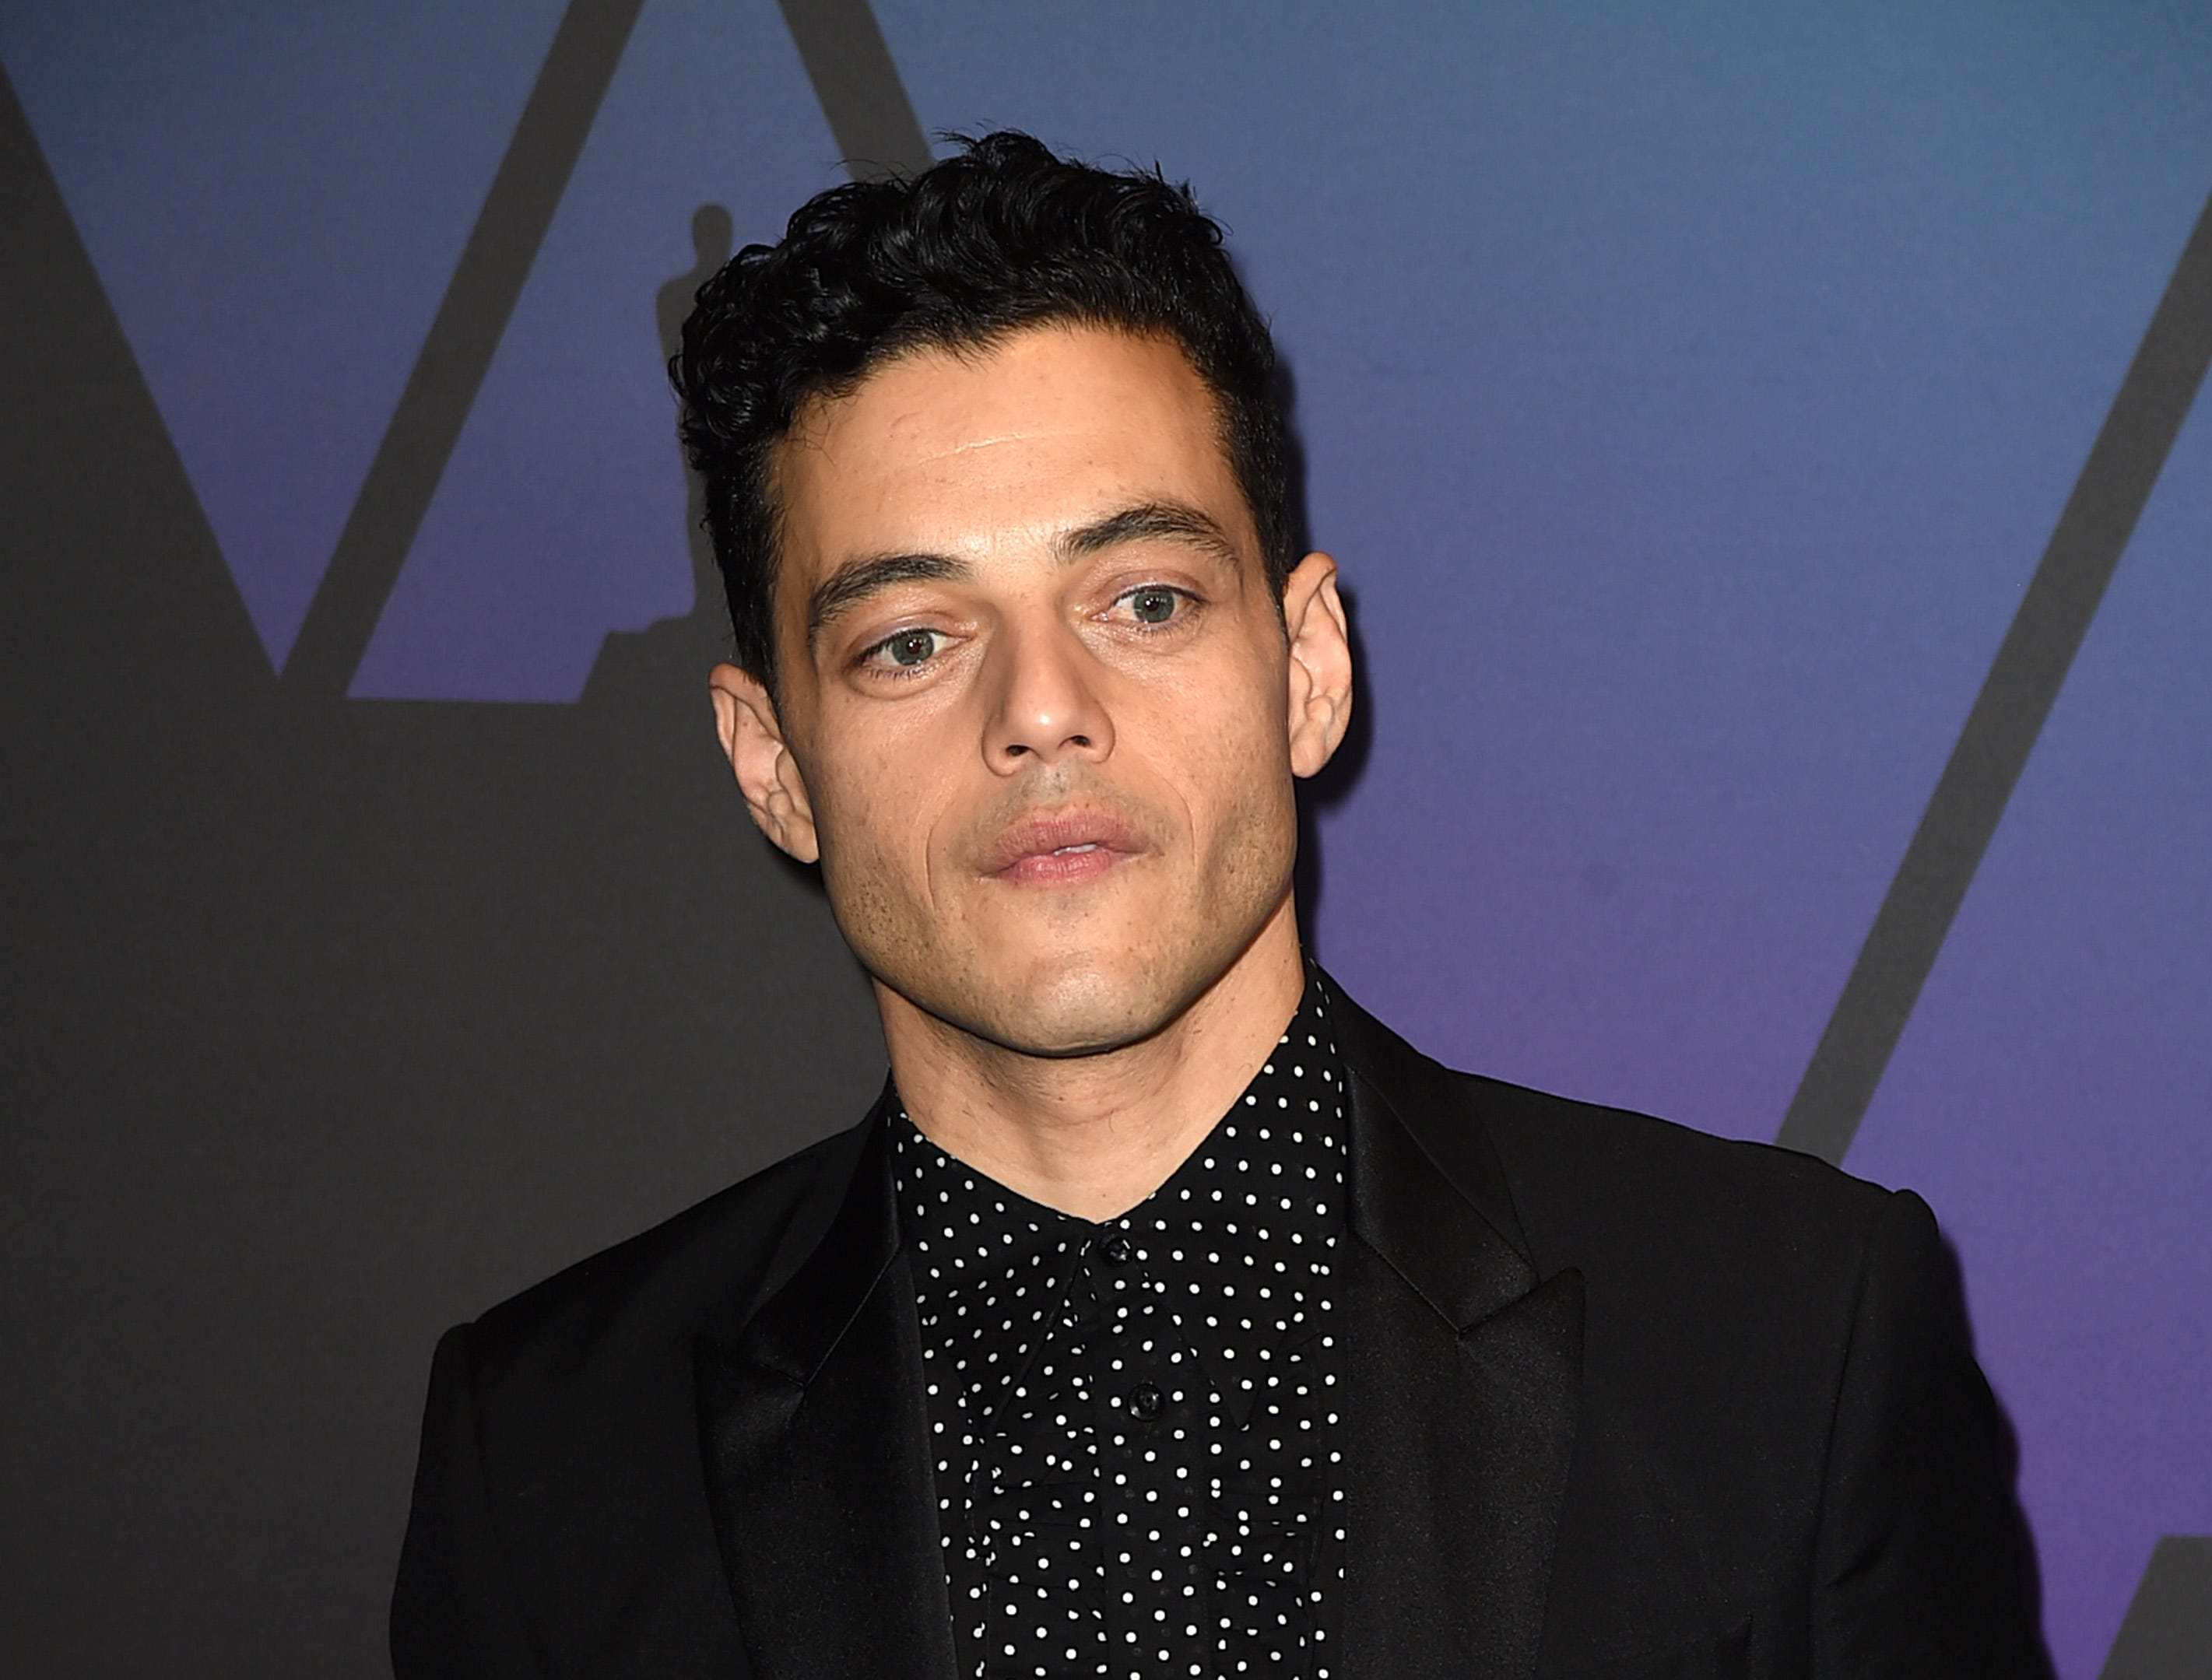 HOLLYWOOD, CA - NOVEMBER 18:  Rami Malek attends the Academy of Motion Picture Arts and Sciences' 10th annual Governors Awards at The Ray Dolby Ballroom at Hollywood & Highland Center on November 18, 2018 in Hollywood, California.  (Photo by Kevin Winter/Getty Images) ORG XMIT: 775223509 ORIG FILE ID: 1063405212